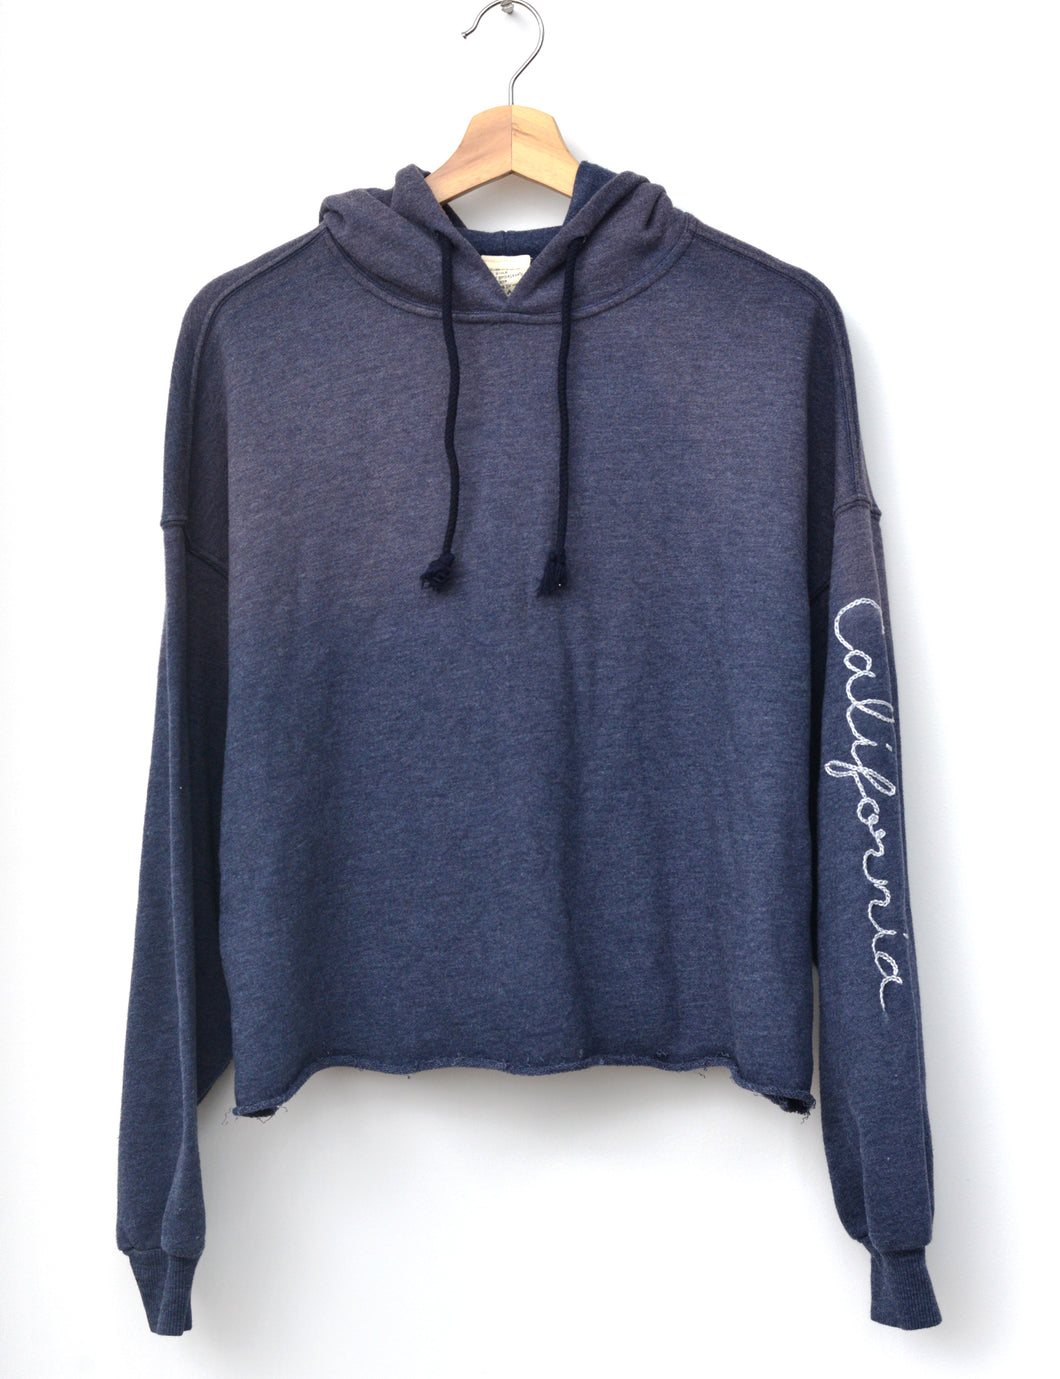 Sierra Hoodie with California Embroidery- Navy